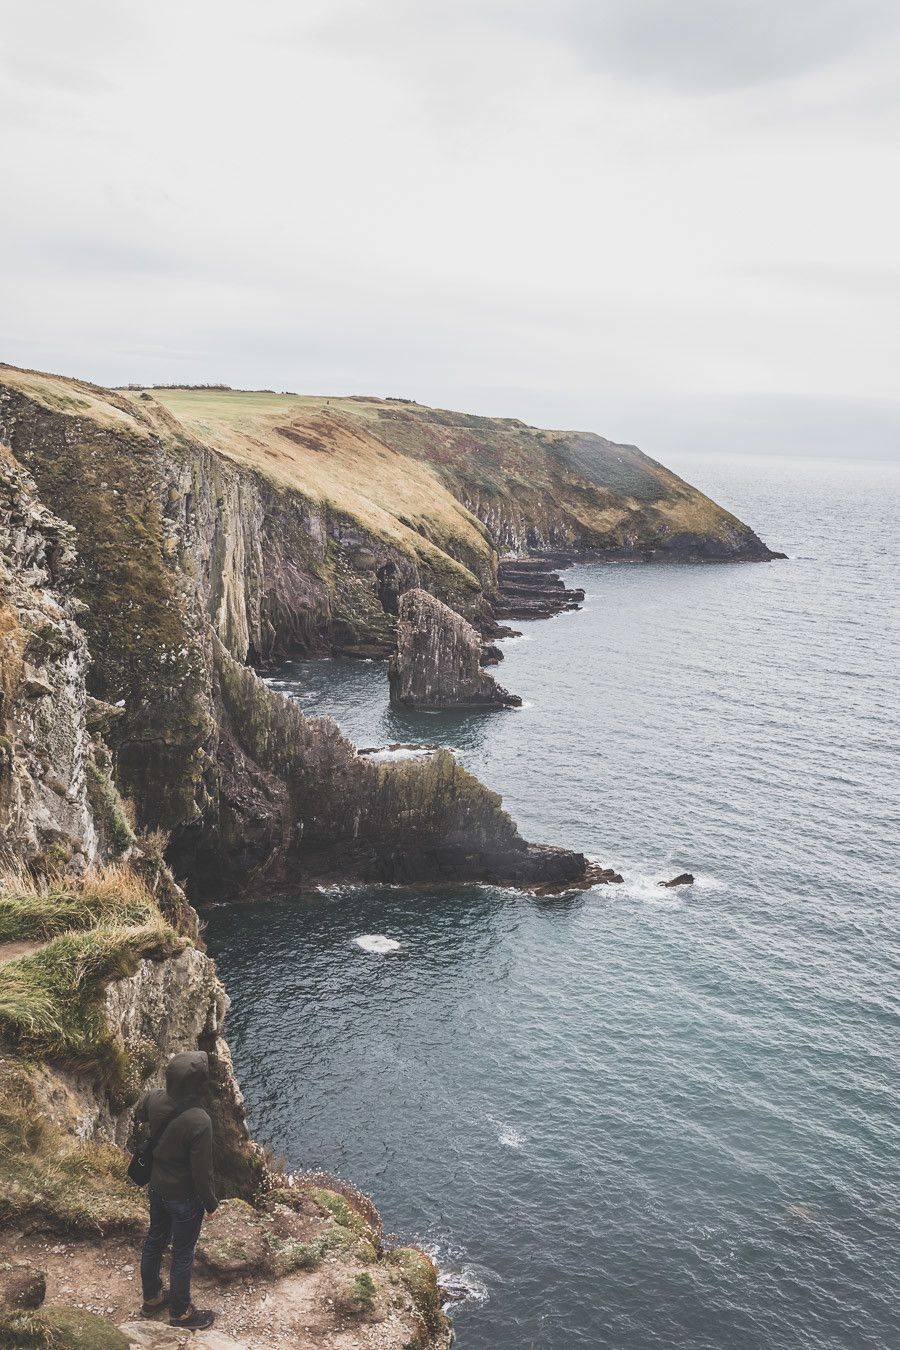 Les falaises de la Old Head of Kinsale